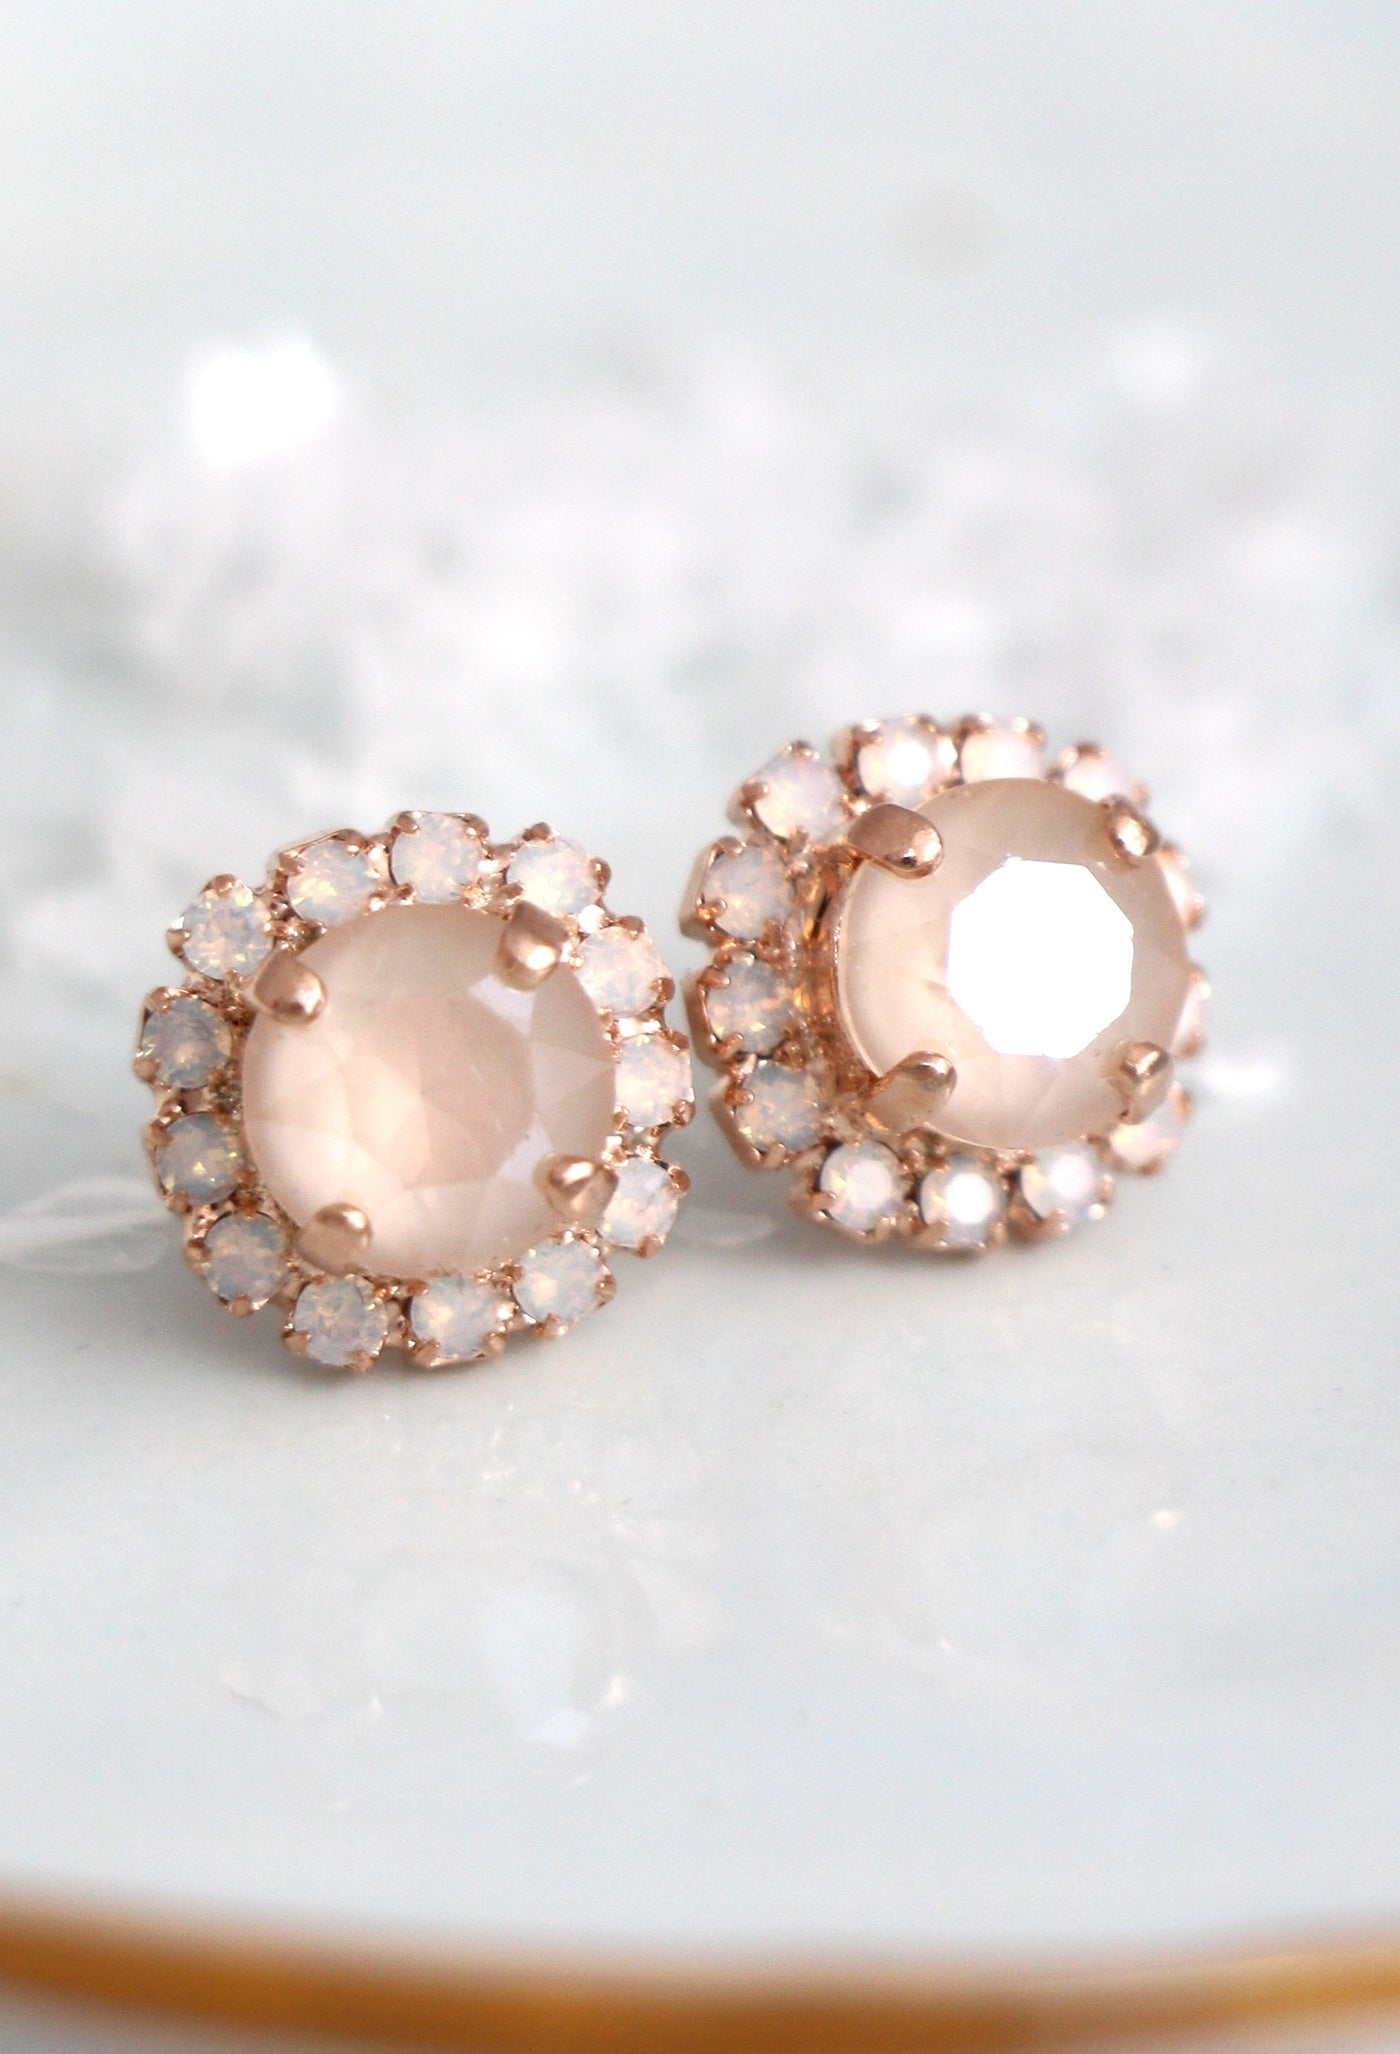 Jenny Ivory Cream Crystal Swarovski Stud Earrings